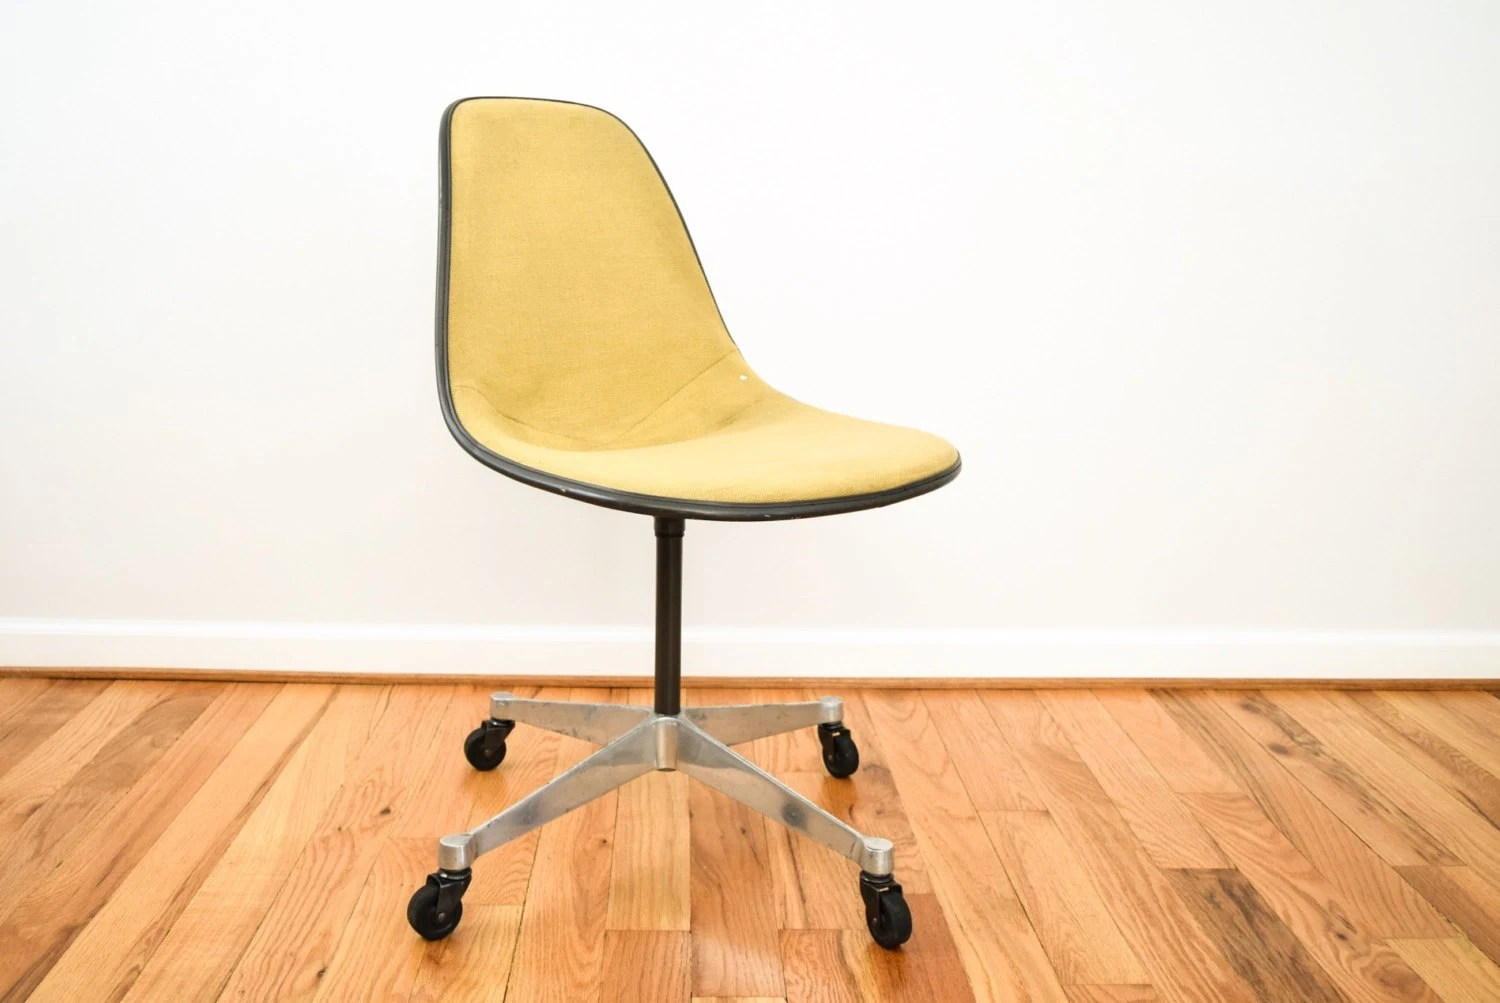 fiberglass shell chair wire chairs for sale eames authentic mid etsy image 0